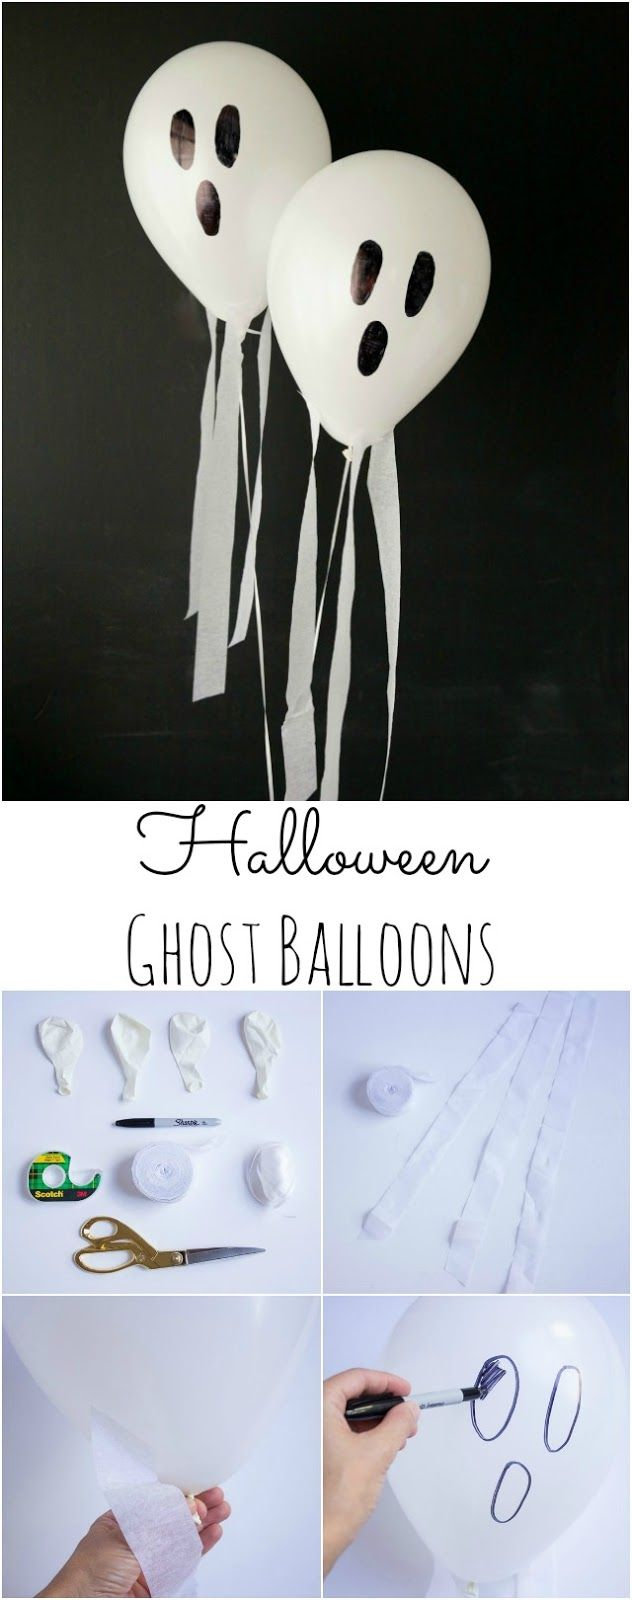 Halloween Ghost Balloons | these balloons look like they are really flying ghosts with a little breeze!